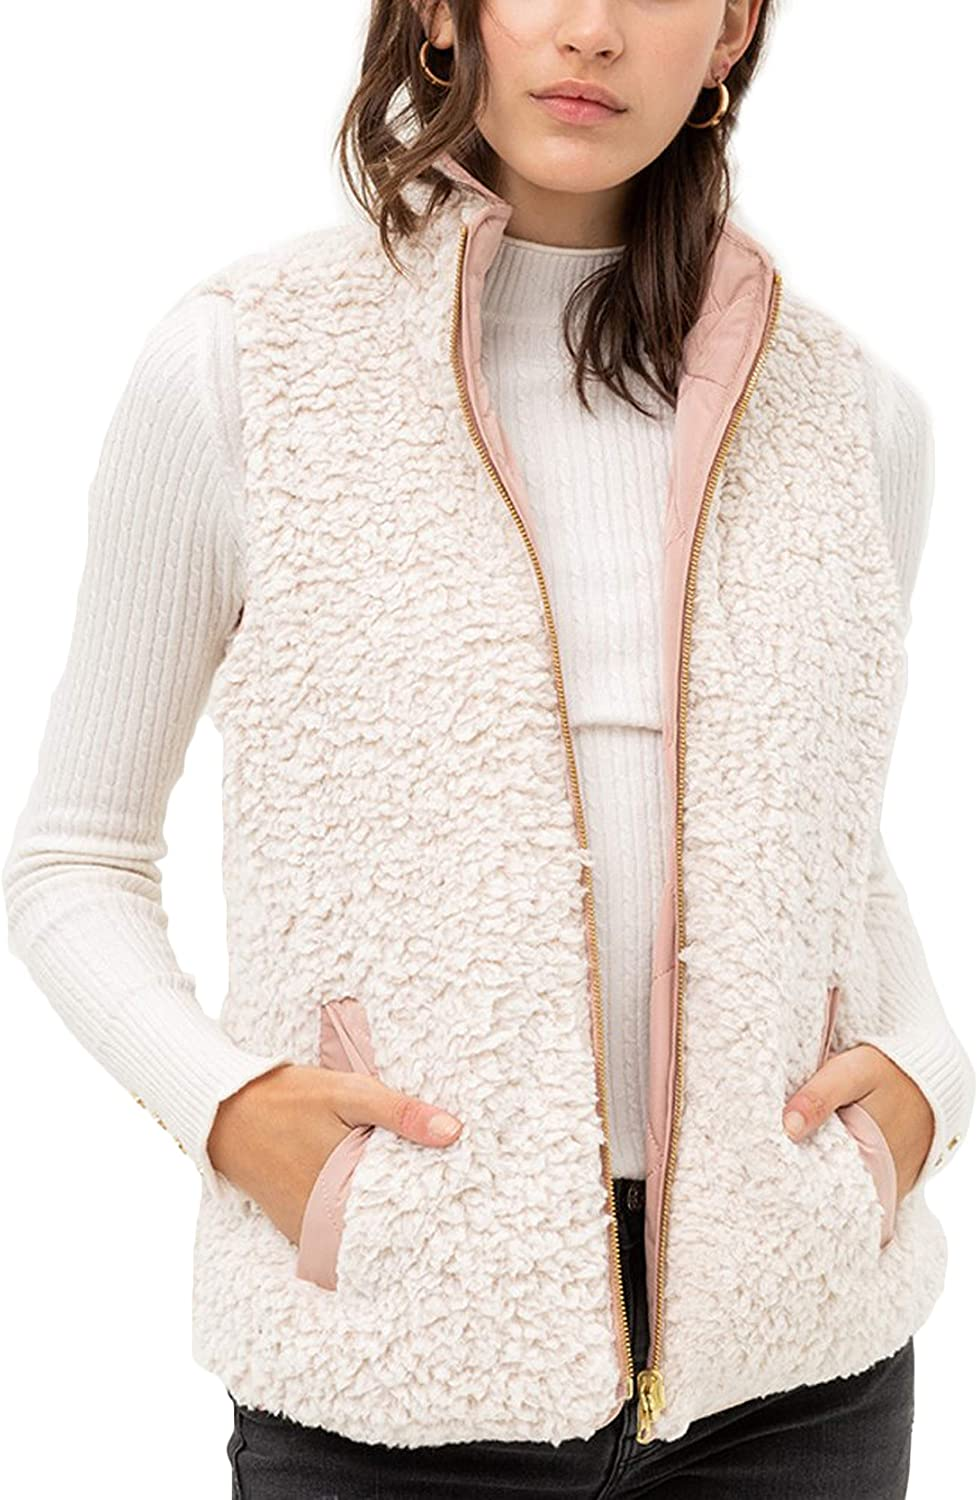 Reversible Sherpa Fleece Zip Up Jacket with Pockets FASHION BOOMY Womens Quilted Padding Vest